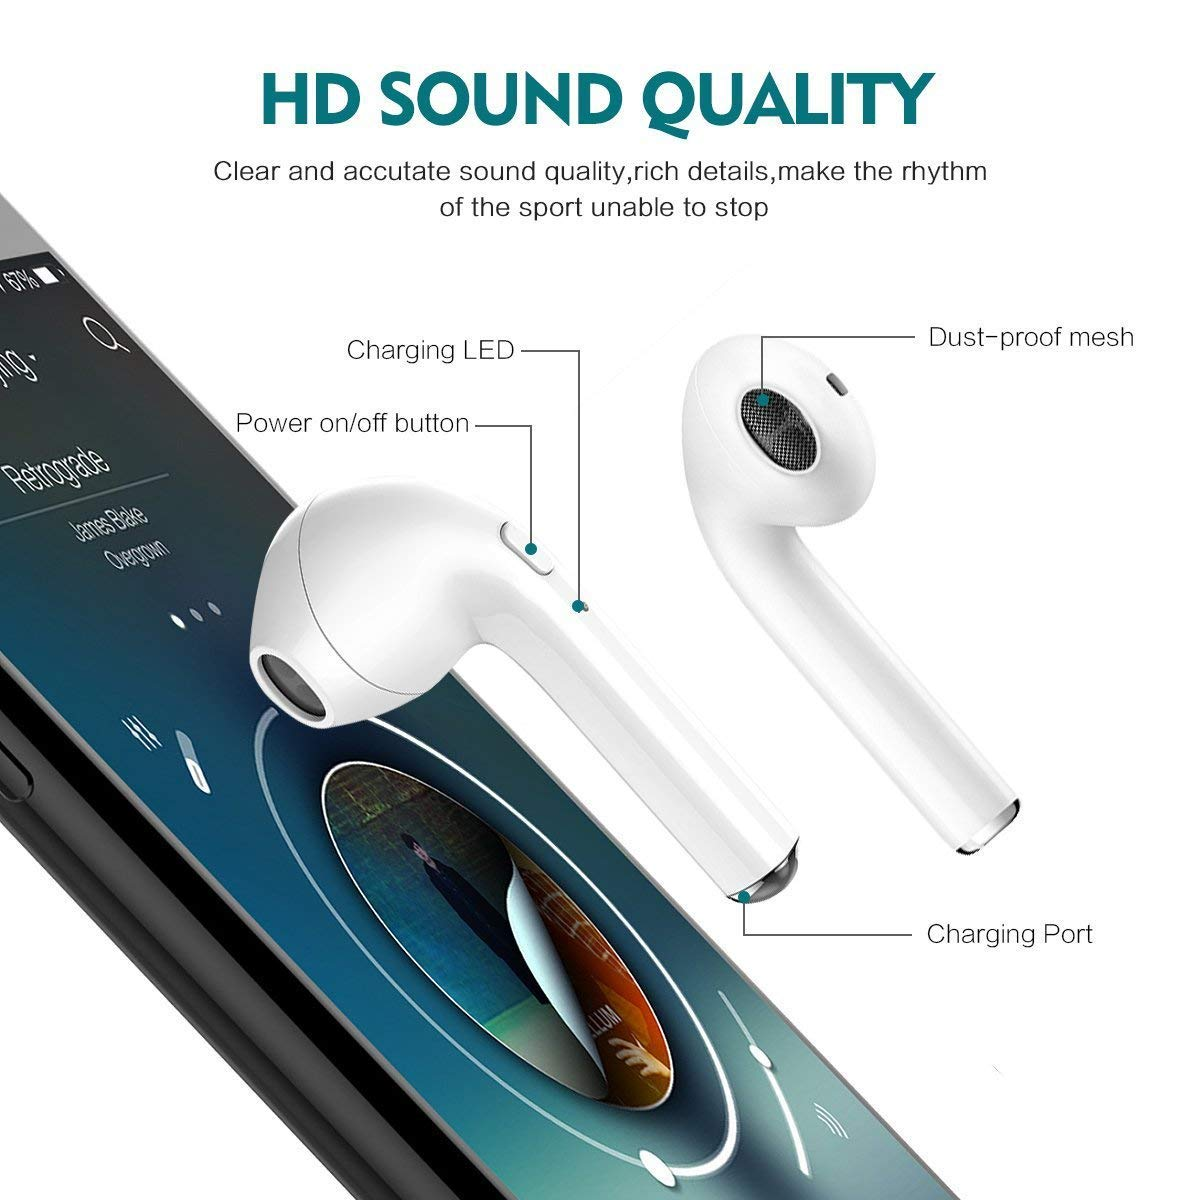 Upgraded Version Bluetooth 5.0 Earbuds Earphones Stereo Sports Headphons Earbuds Noise Cancelling and Waterproof Headsets with Built-in Mic Portable Charging Case-White-AQwzh-1